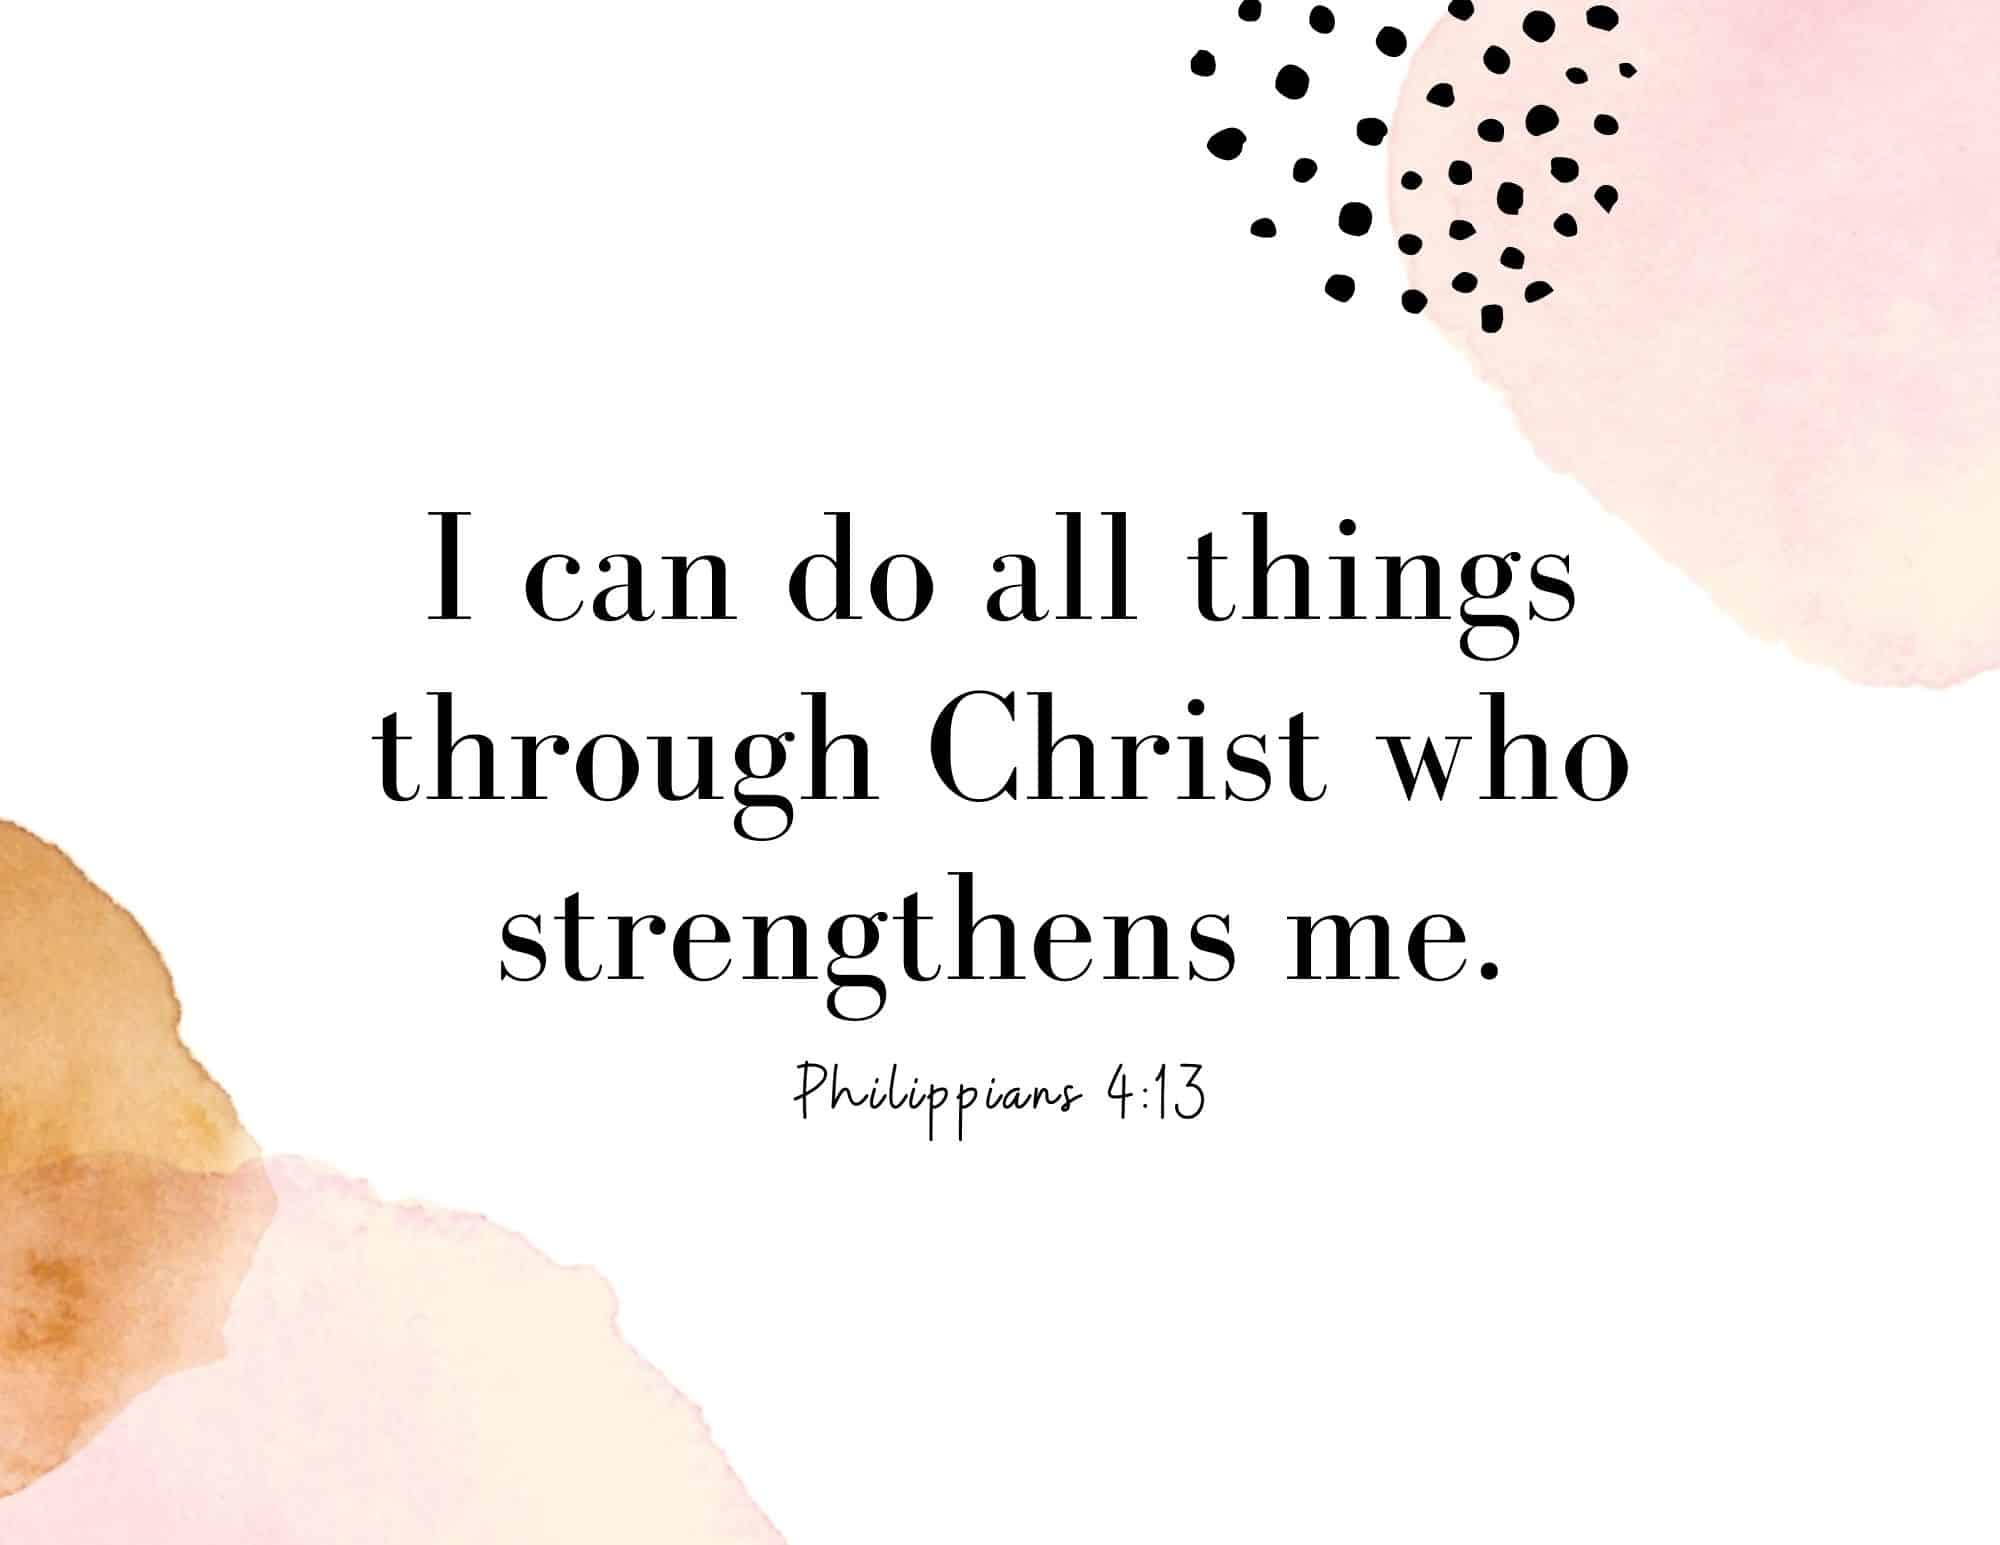 I can do all things through Christ who strengthens me - scripture on not giving up